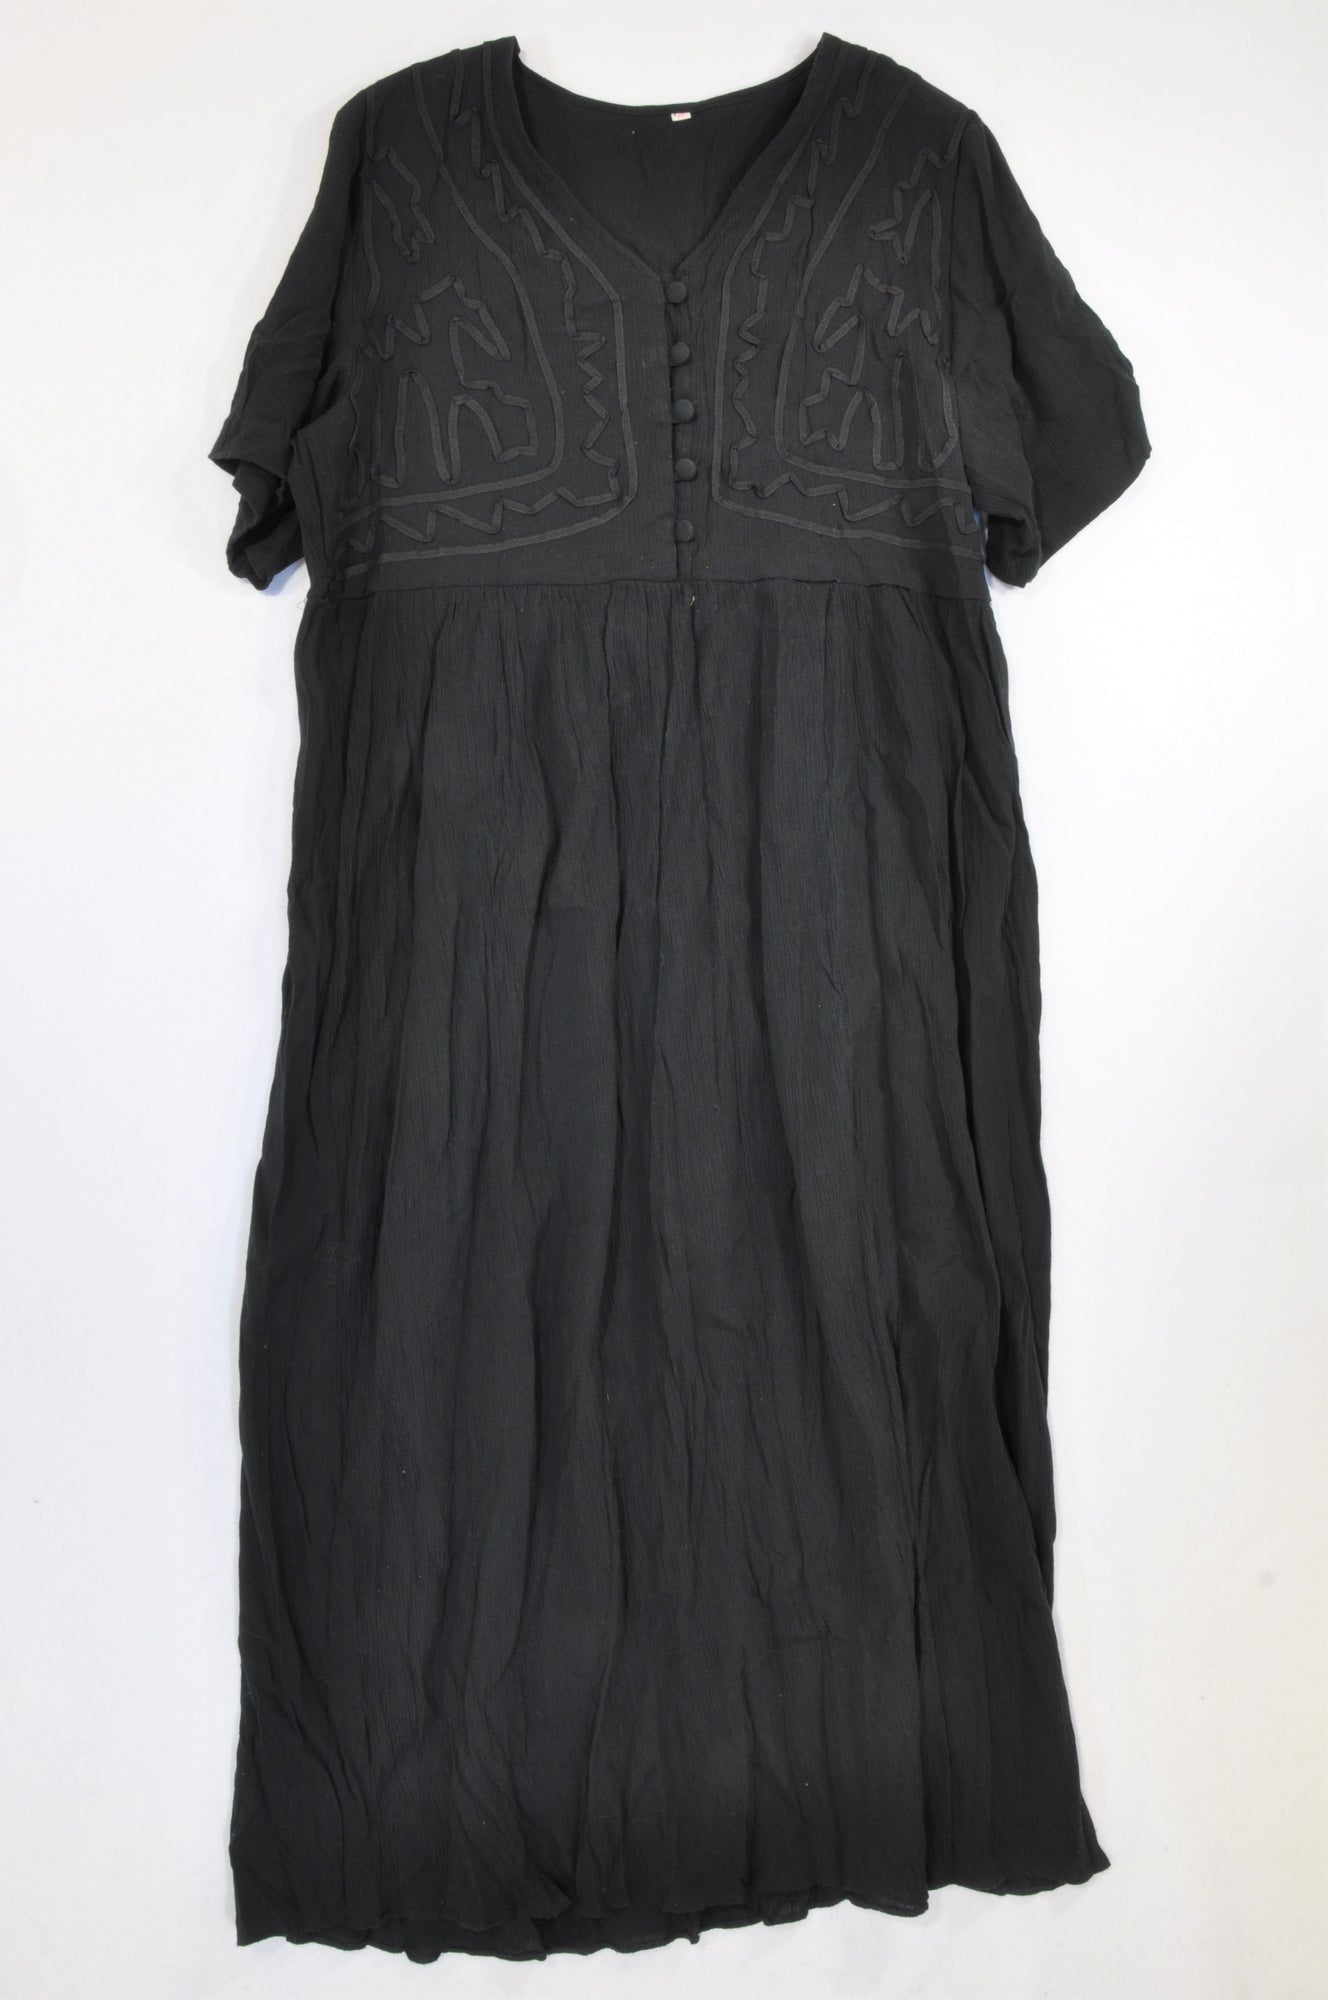 Unbranded Black Ribbon Bodice Crepe Dress Women Size 40